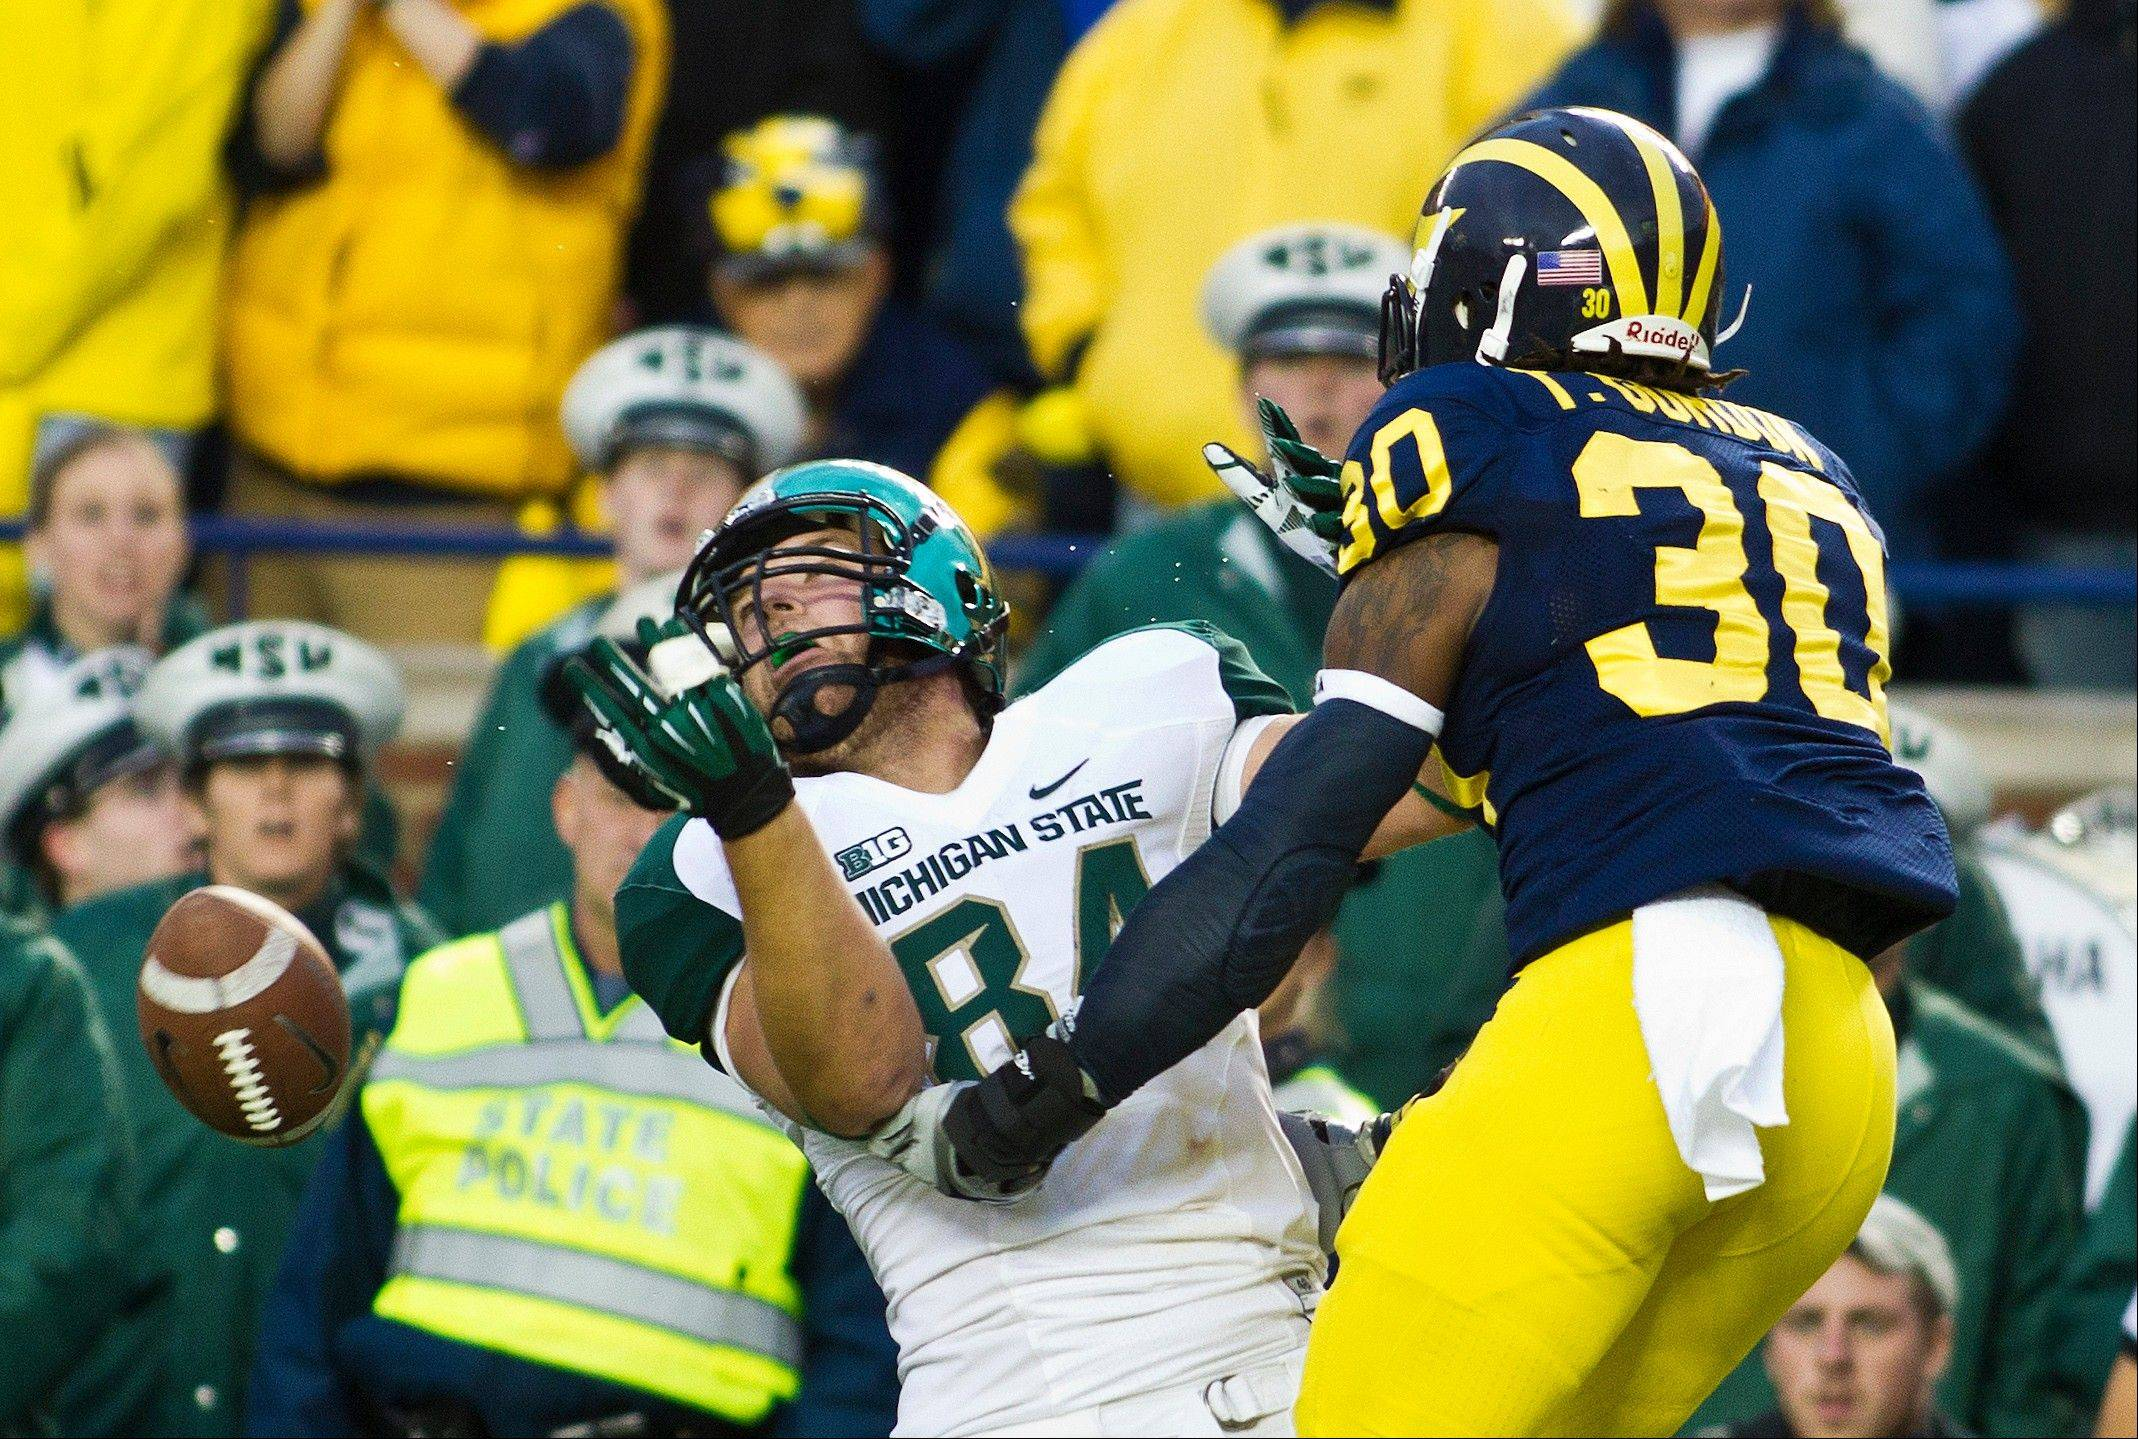 Michigan safety Thomas Gordon breaks up a pass intended for Michigan State tight end Derek Hoebing in the fourth quarter of Saturday's game in Ann Arbor. Michigan won 12-10.